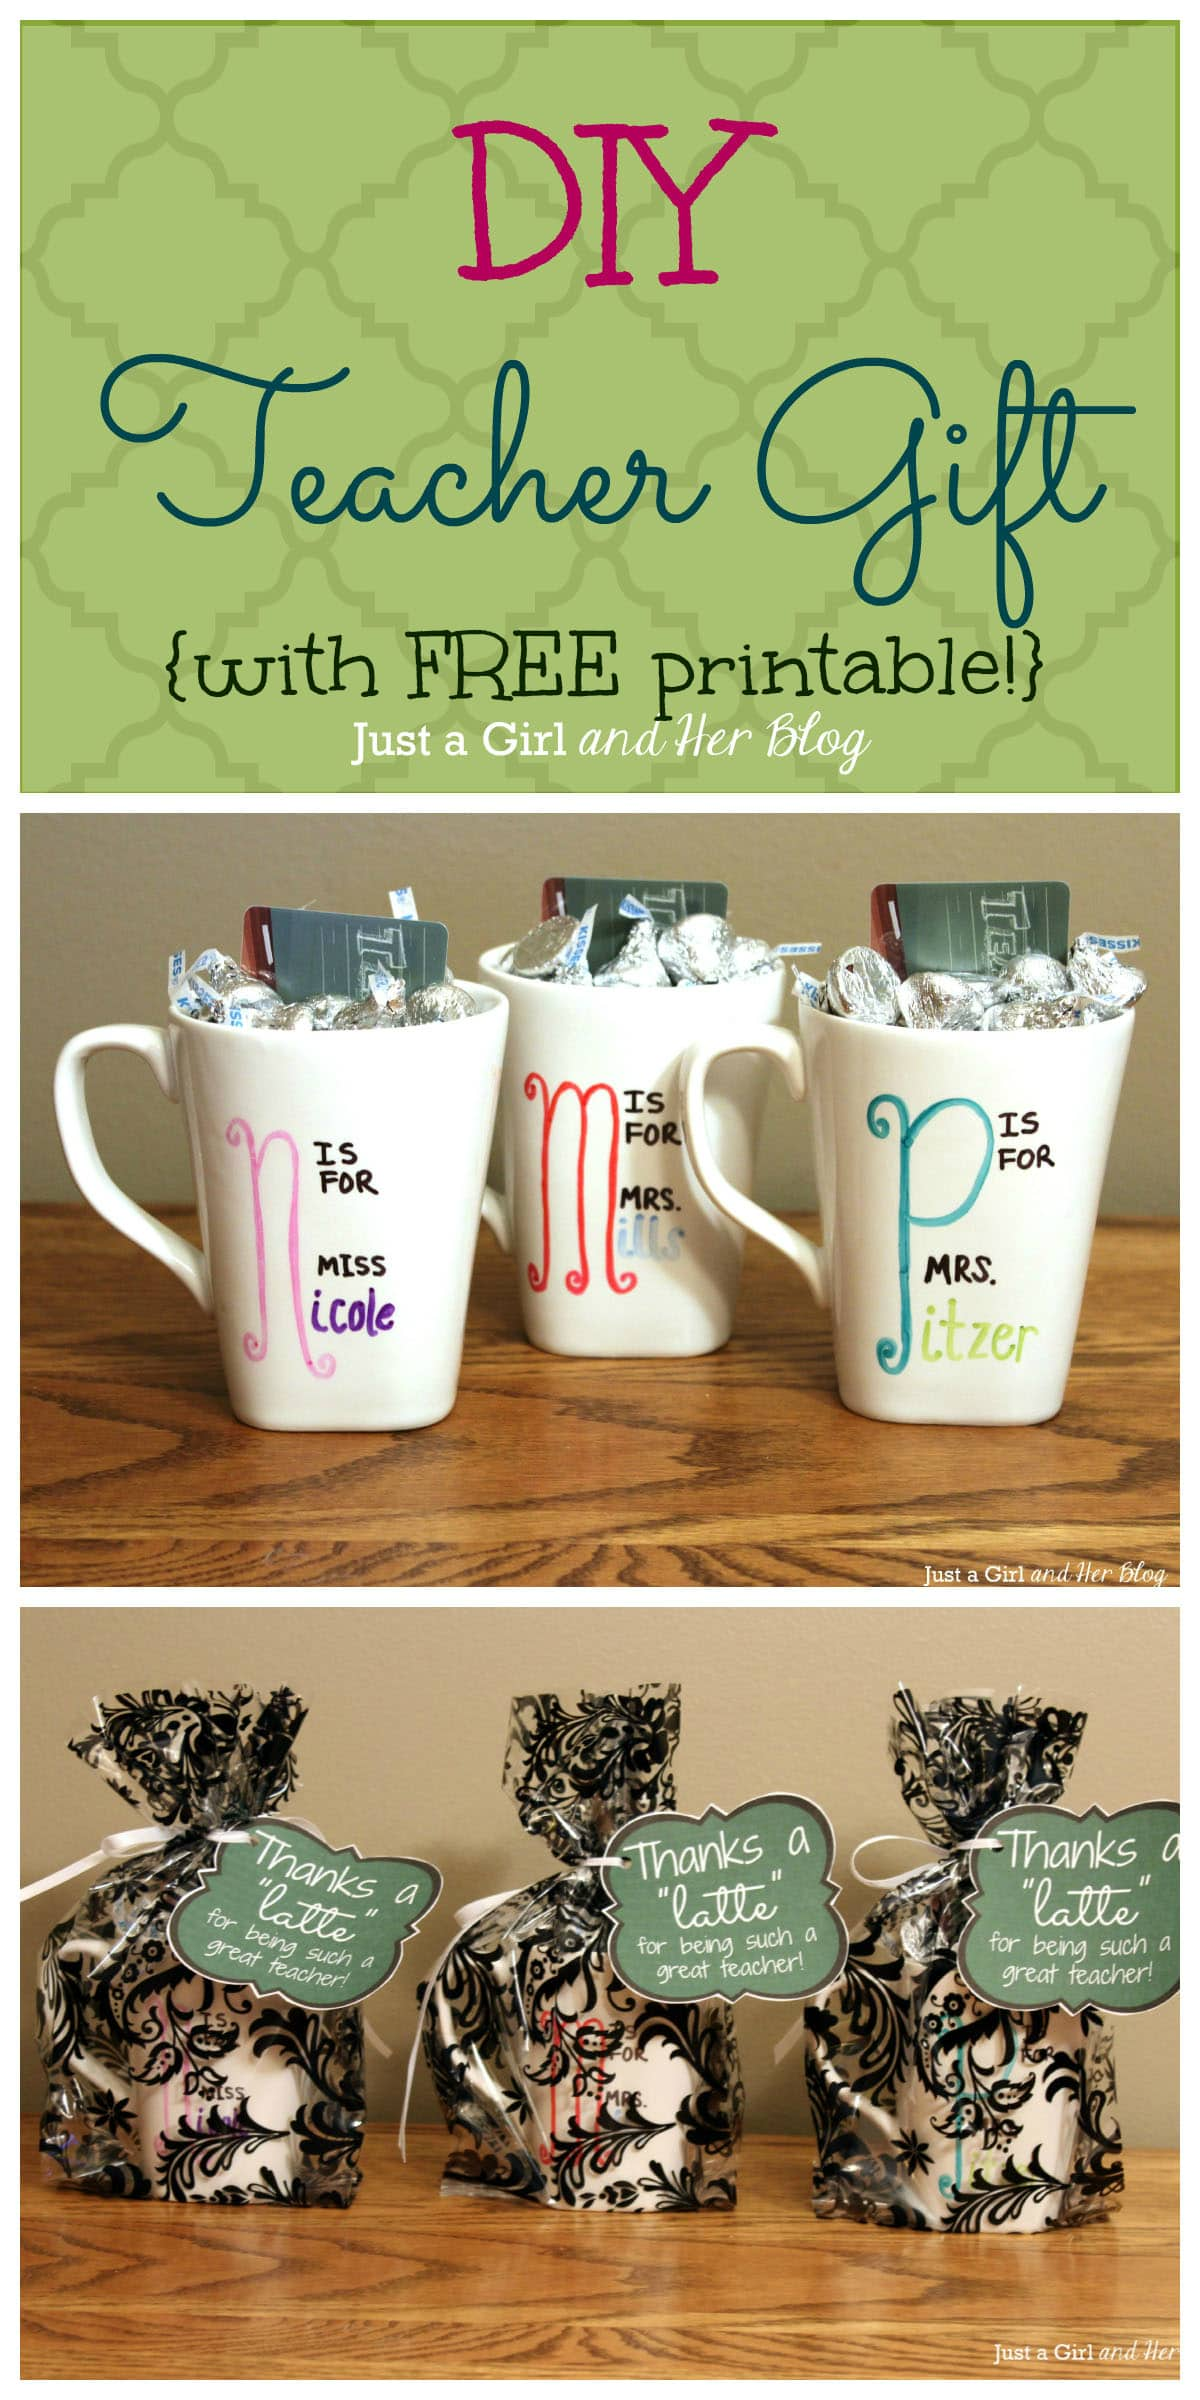 image about Thanks a Latte Christmas Printable identify Do-it-yourself Trainer Reward with Totally free Printable!